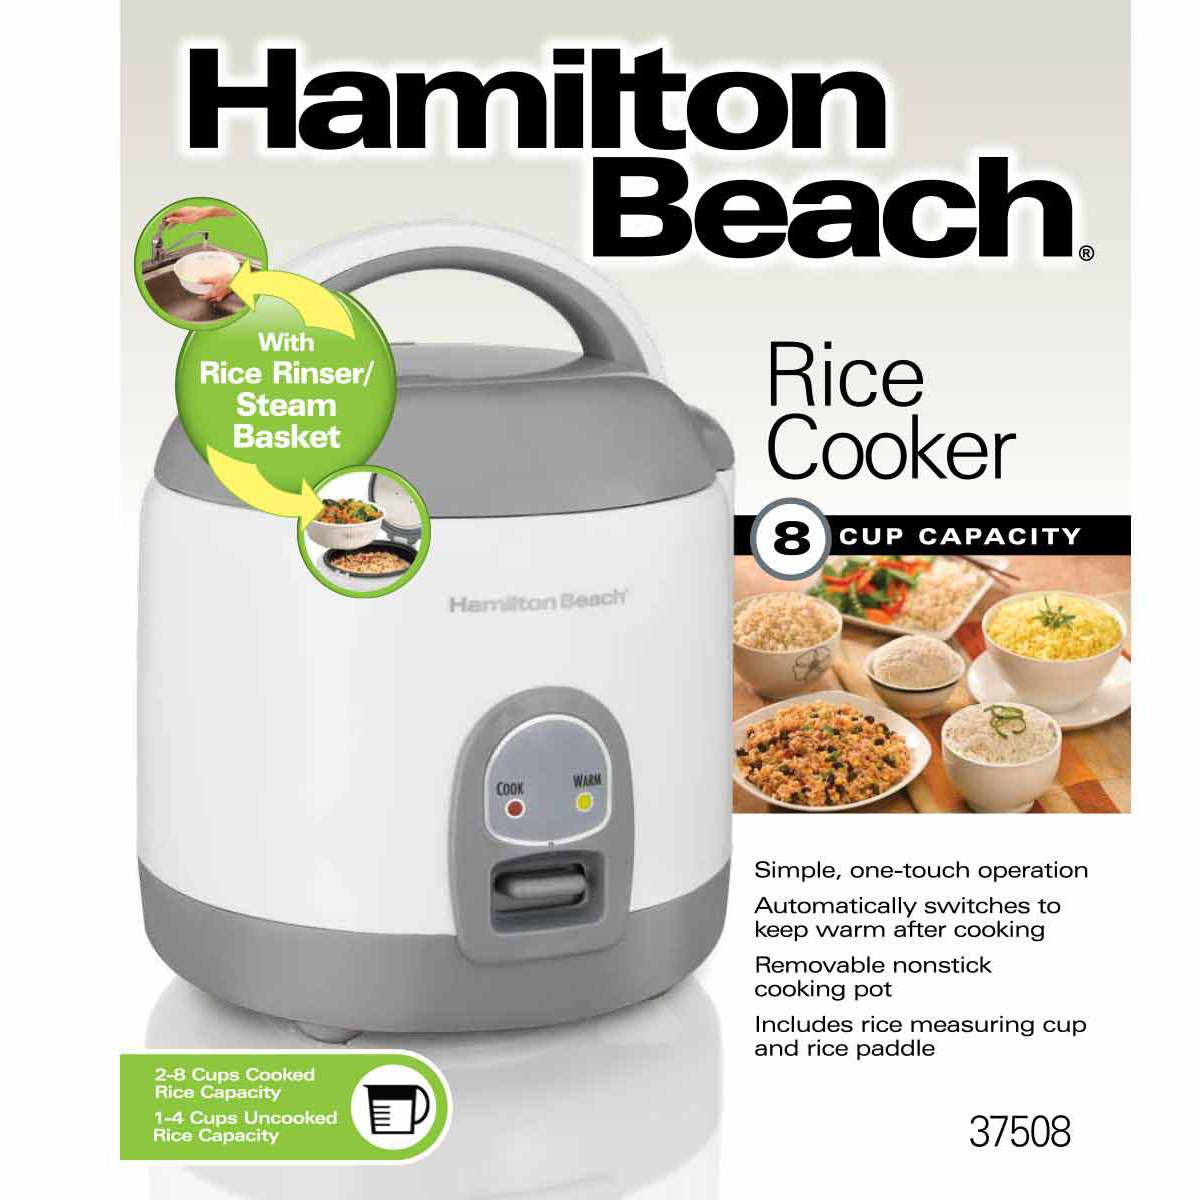 28 Cup Capacity (cooked) Rice Cooker (37508)